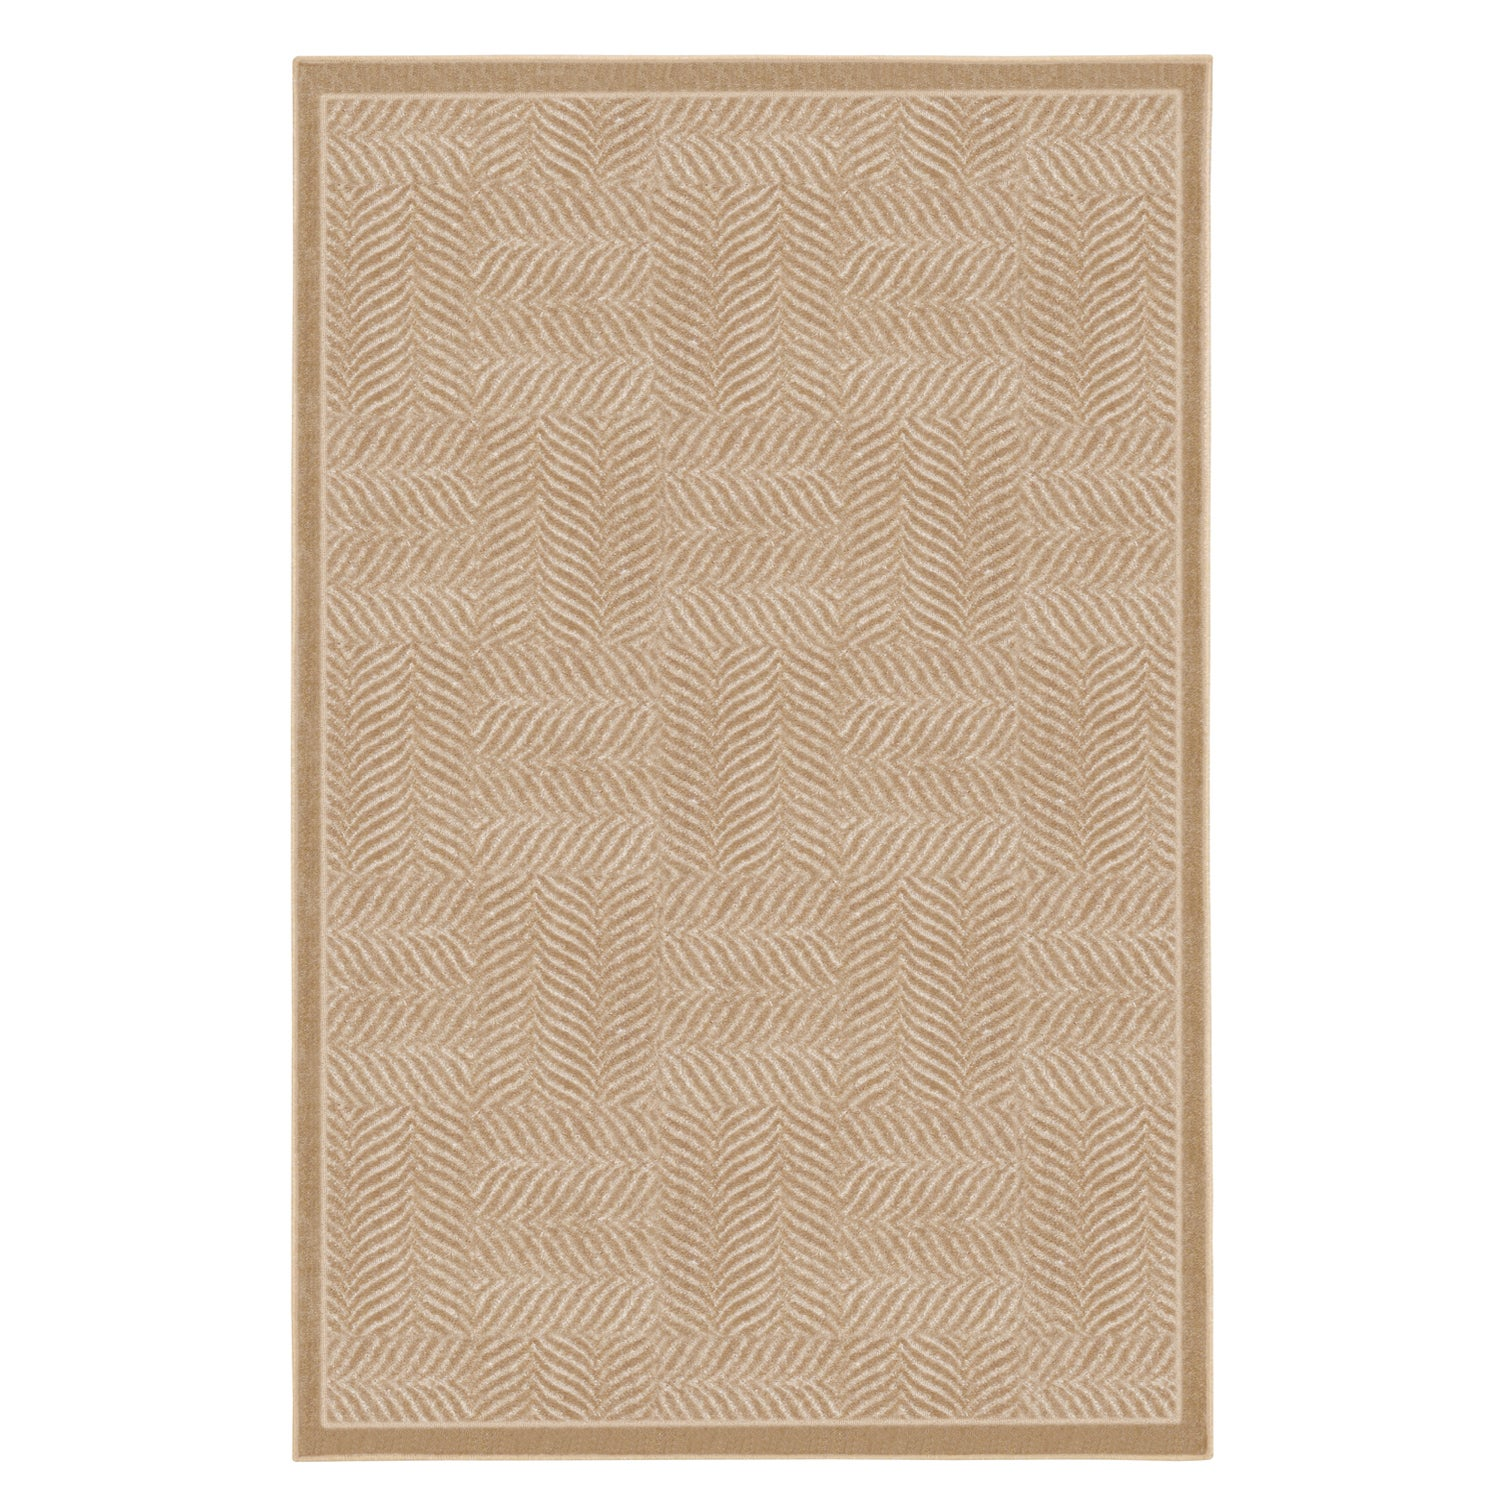 Tiger Patch Clay Beige Rug (8' x 10')